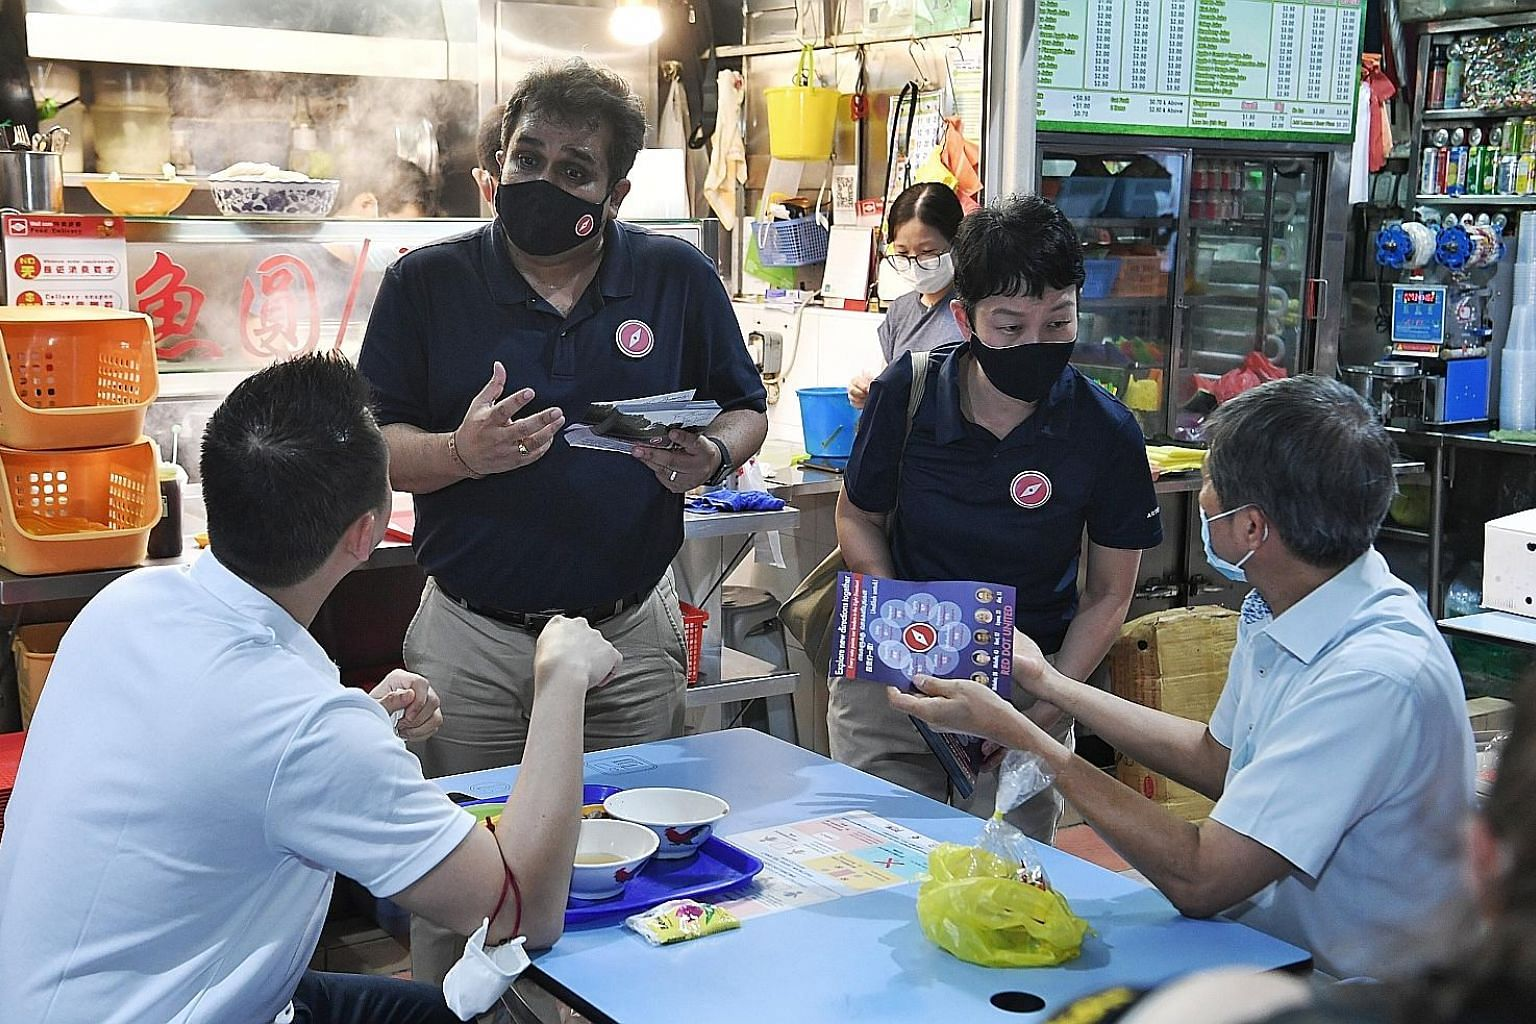 Red Dot United secretary-general Ravi Philemon and chairman Michelle Lee meeting residents at Jurong West 505 Market and Food Centre yesterday. Mr Philemon said the party's raison d'etre is to give voters a choice, regardless of how tough the fight m